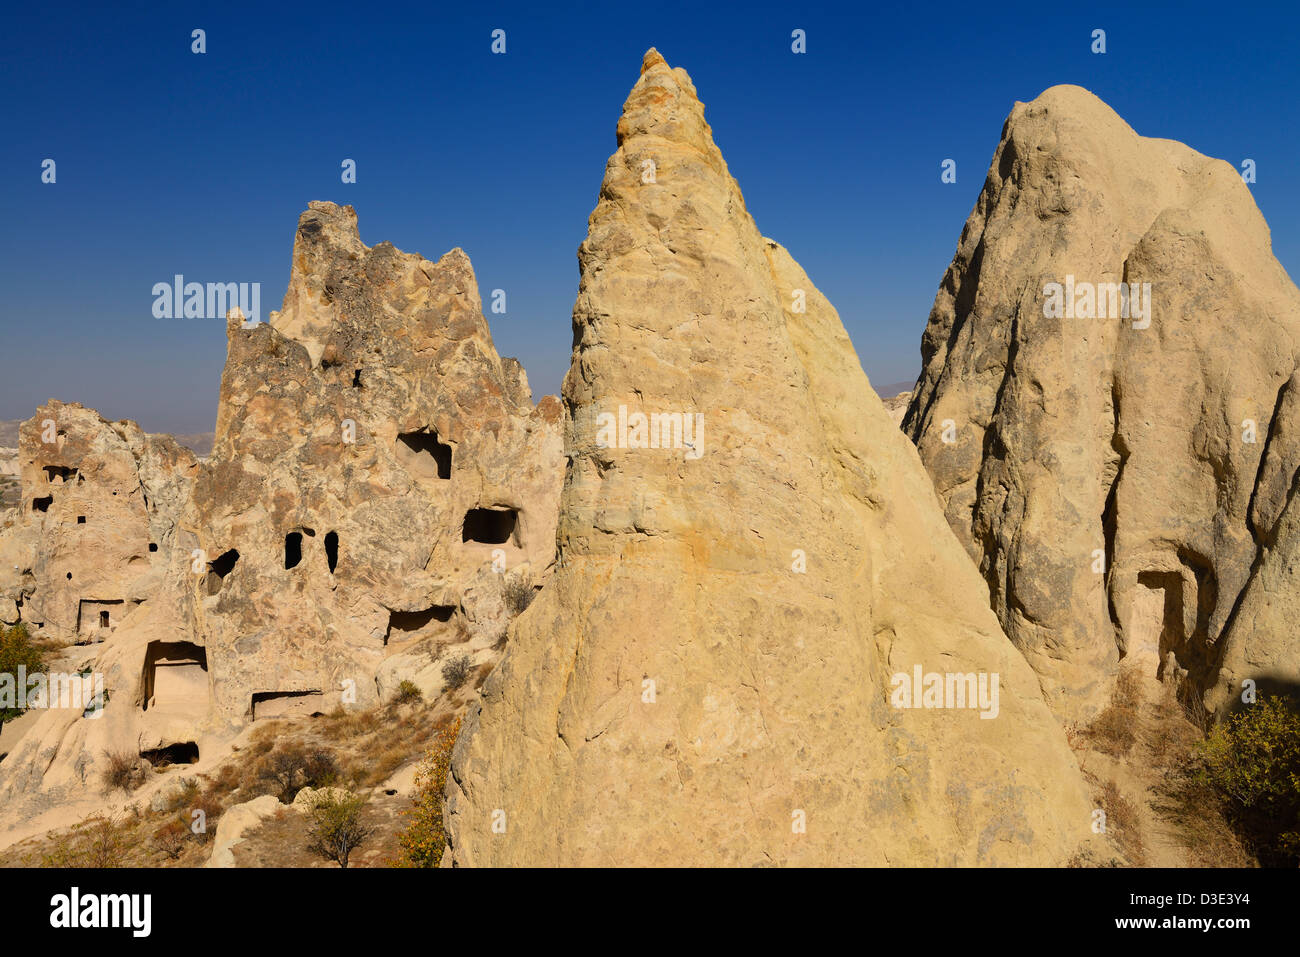 Volcanic Tuff Fairy Chimney caves at Goreme Valley Open Air Museum Turkey with Nunnery and Buckle Church Cappadocia - Stock Image